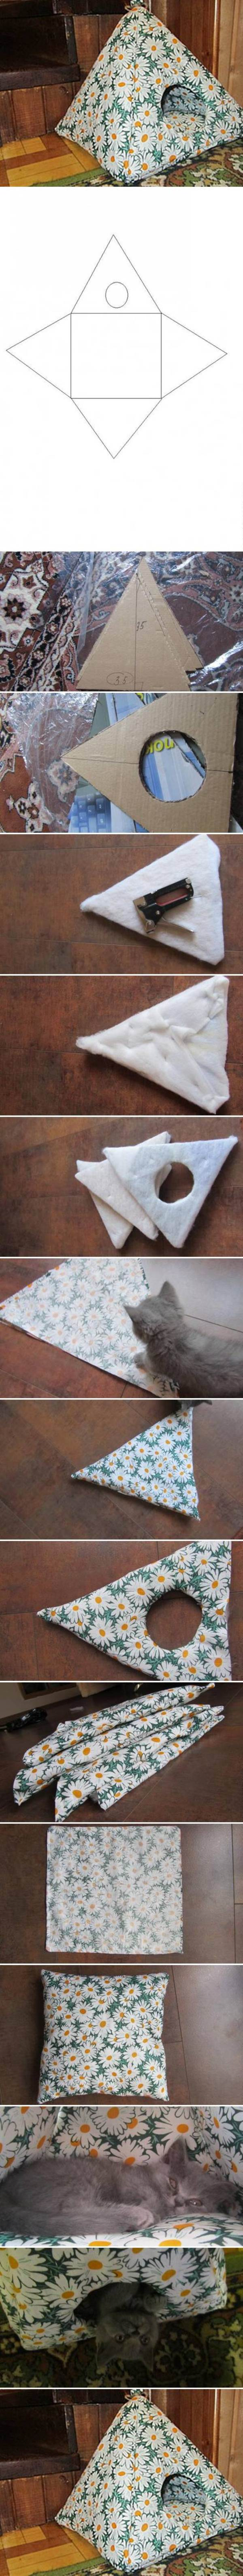 diy-cozy-cat-tent-1